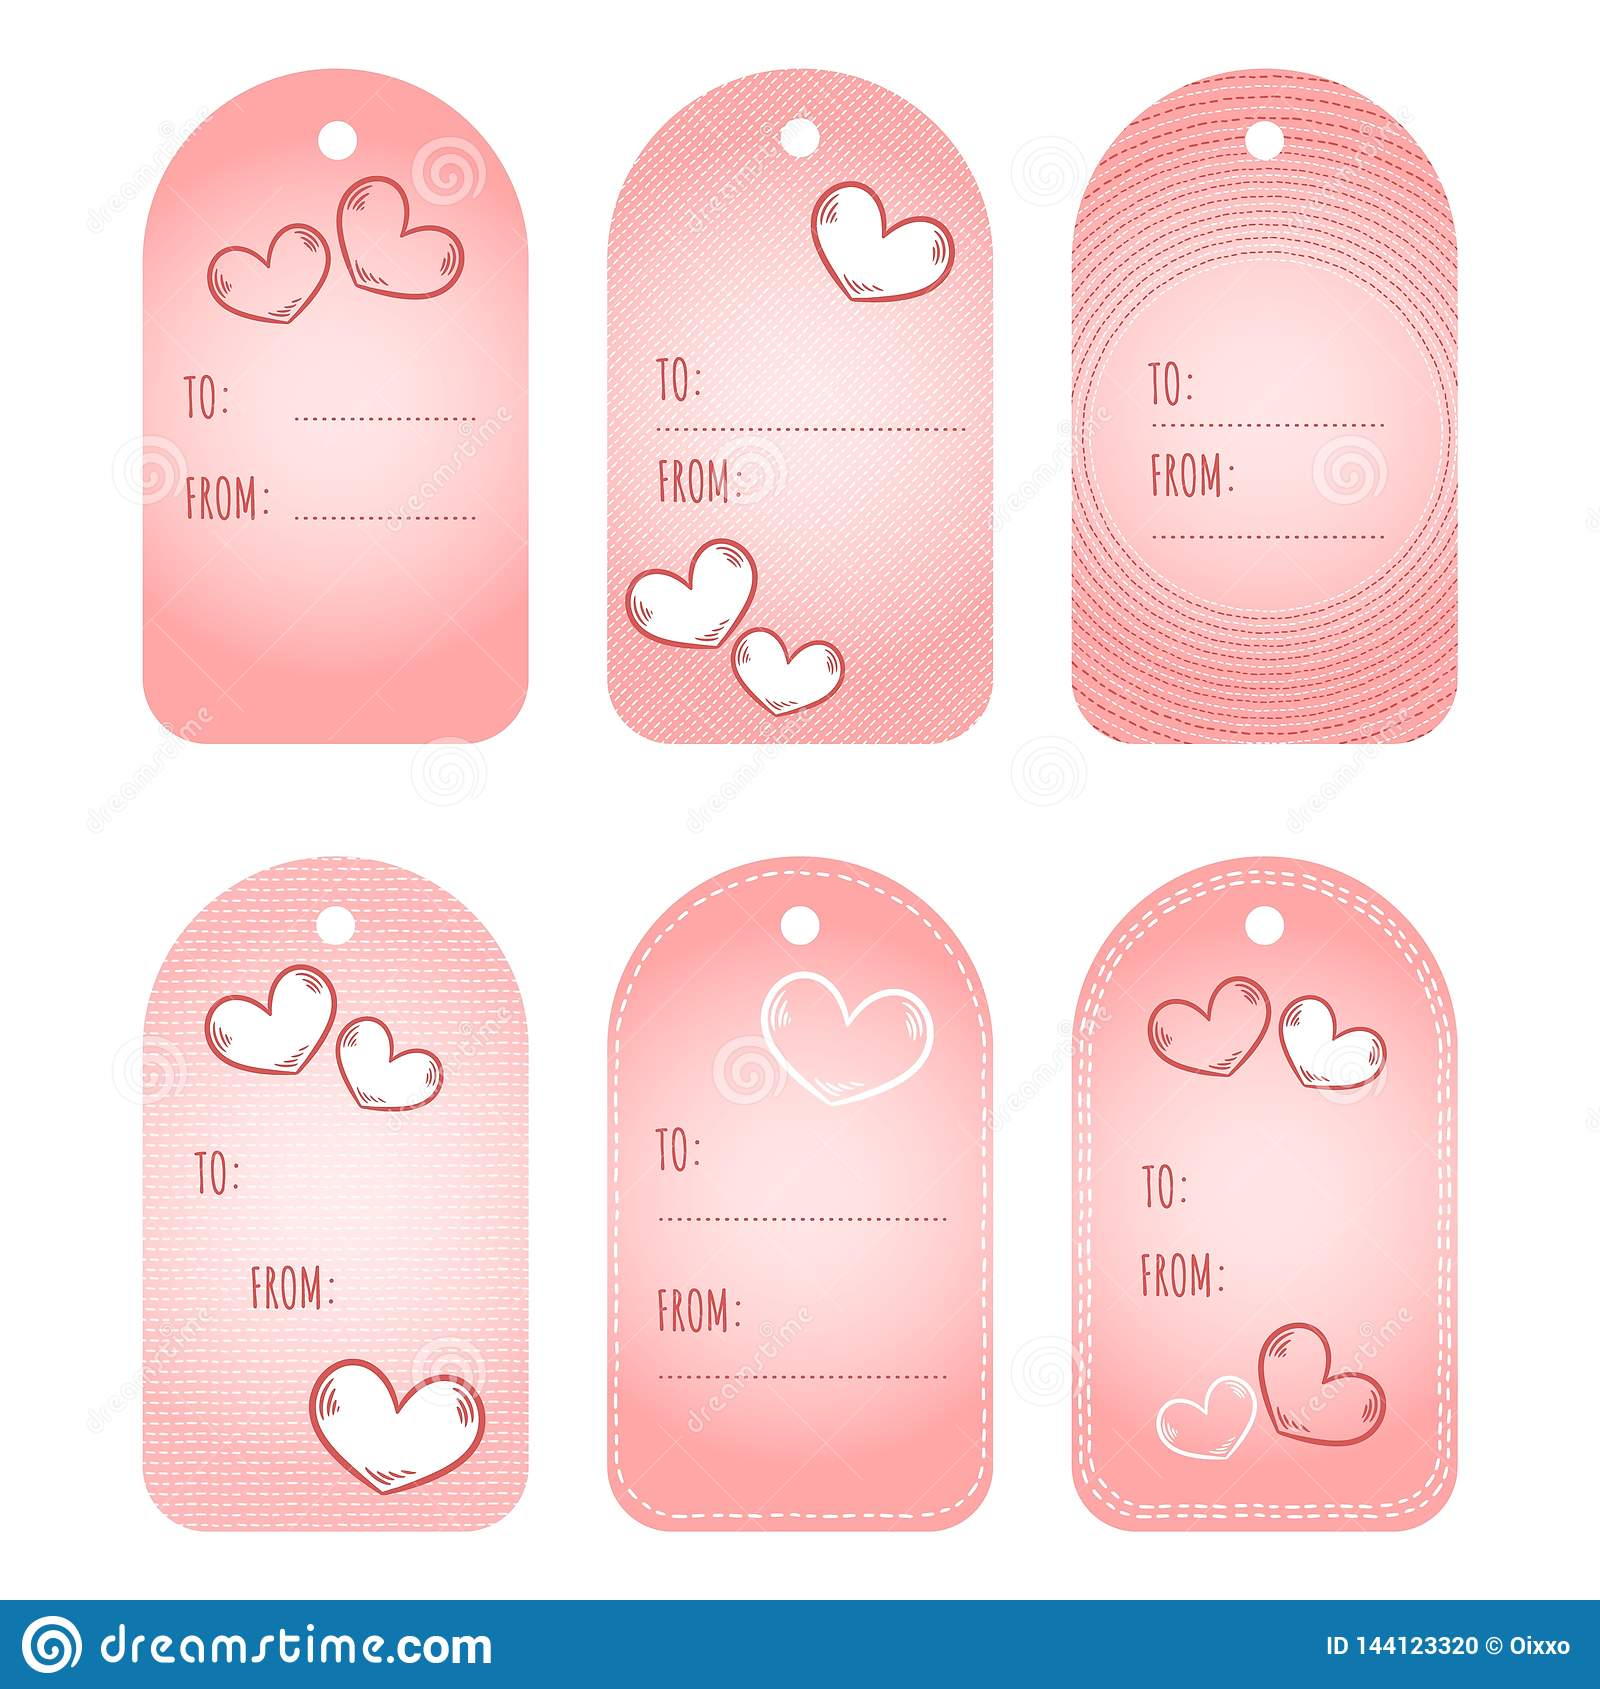 image regarding Cute Gift Tags Printable named Present Tags Labels. Valentine Working day Printable Tags Mounted. Get pleasure from